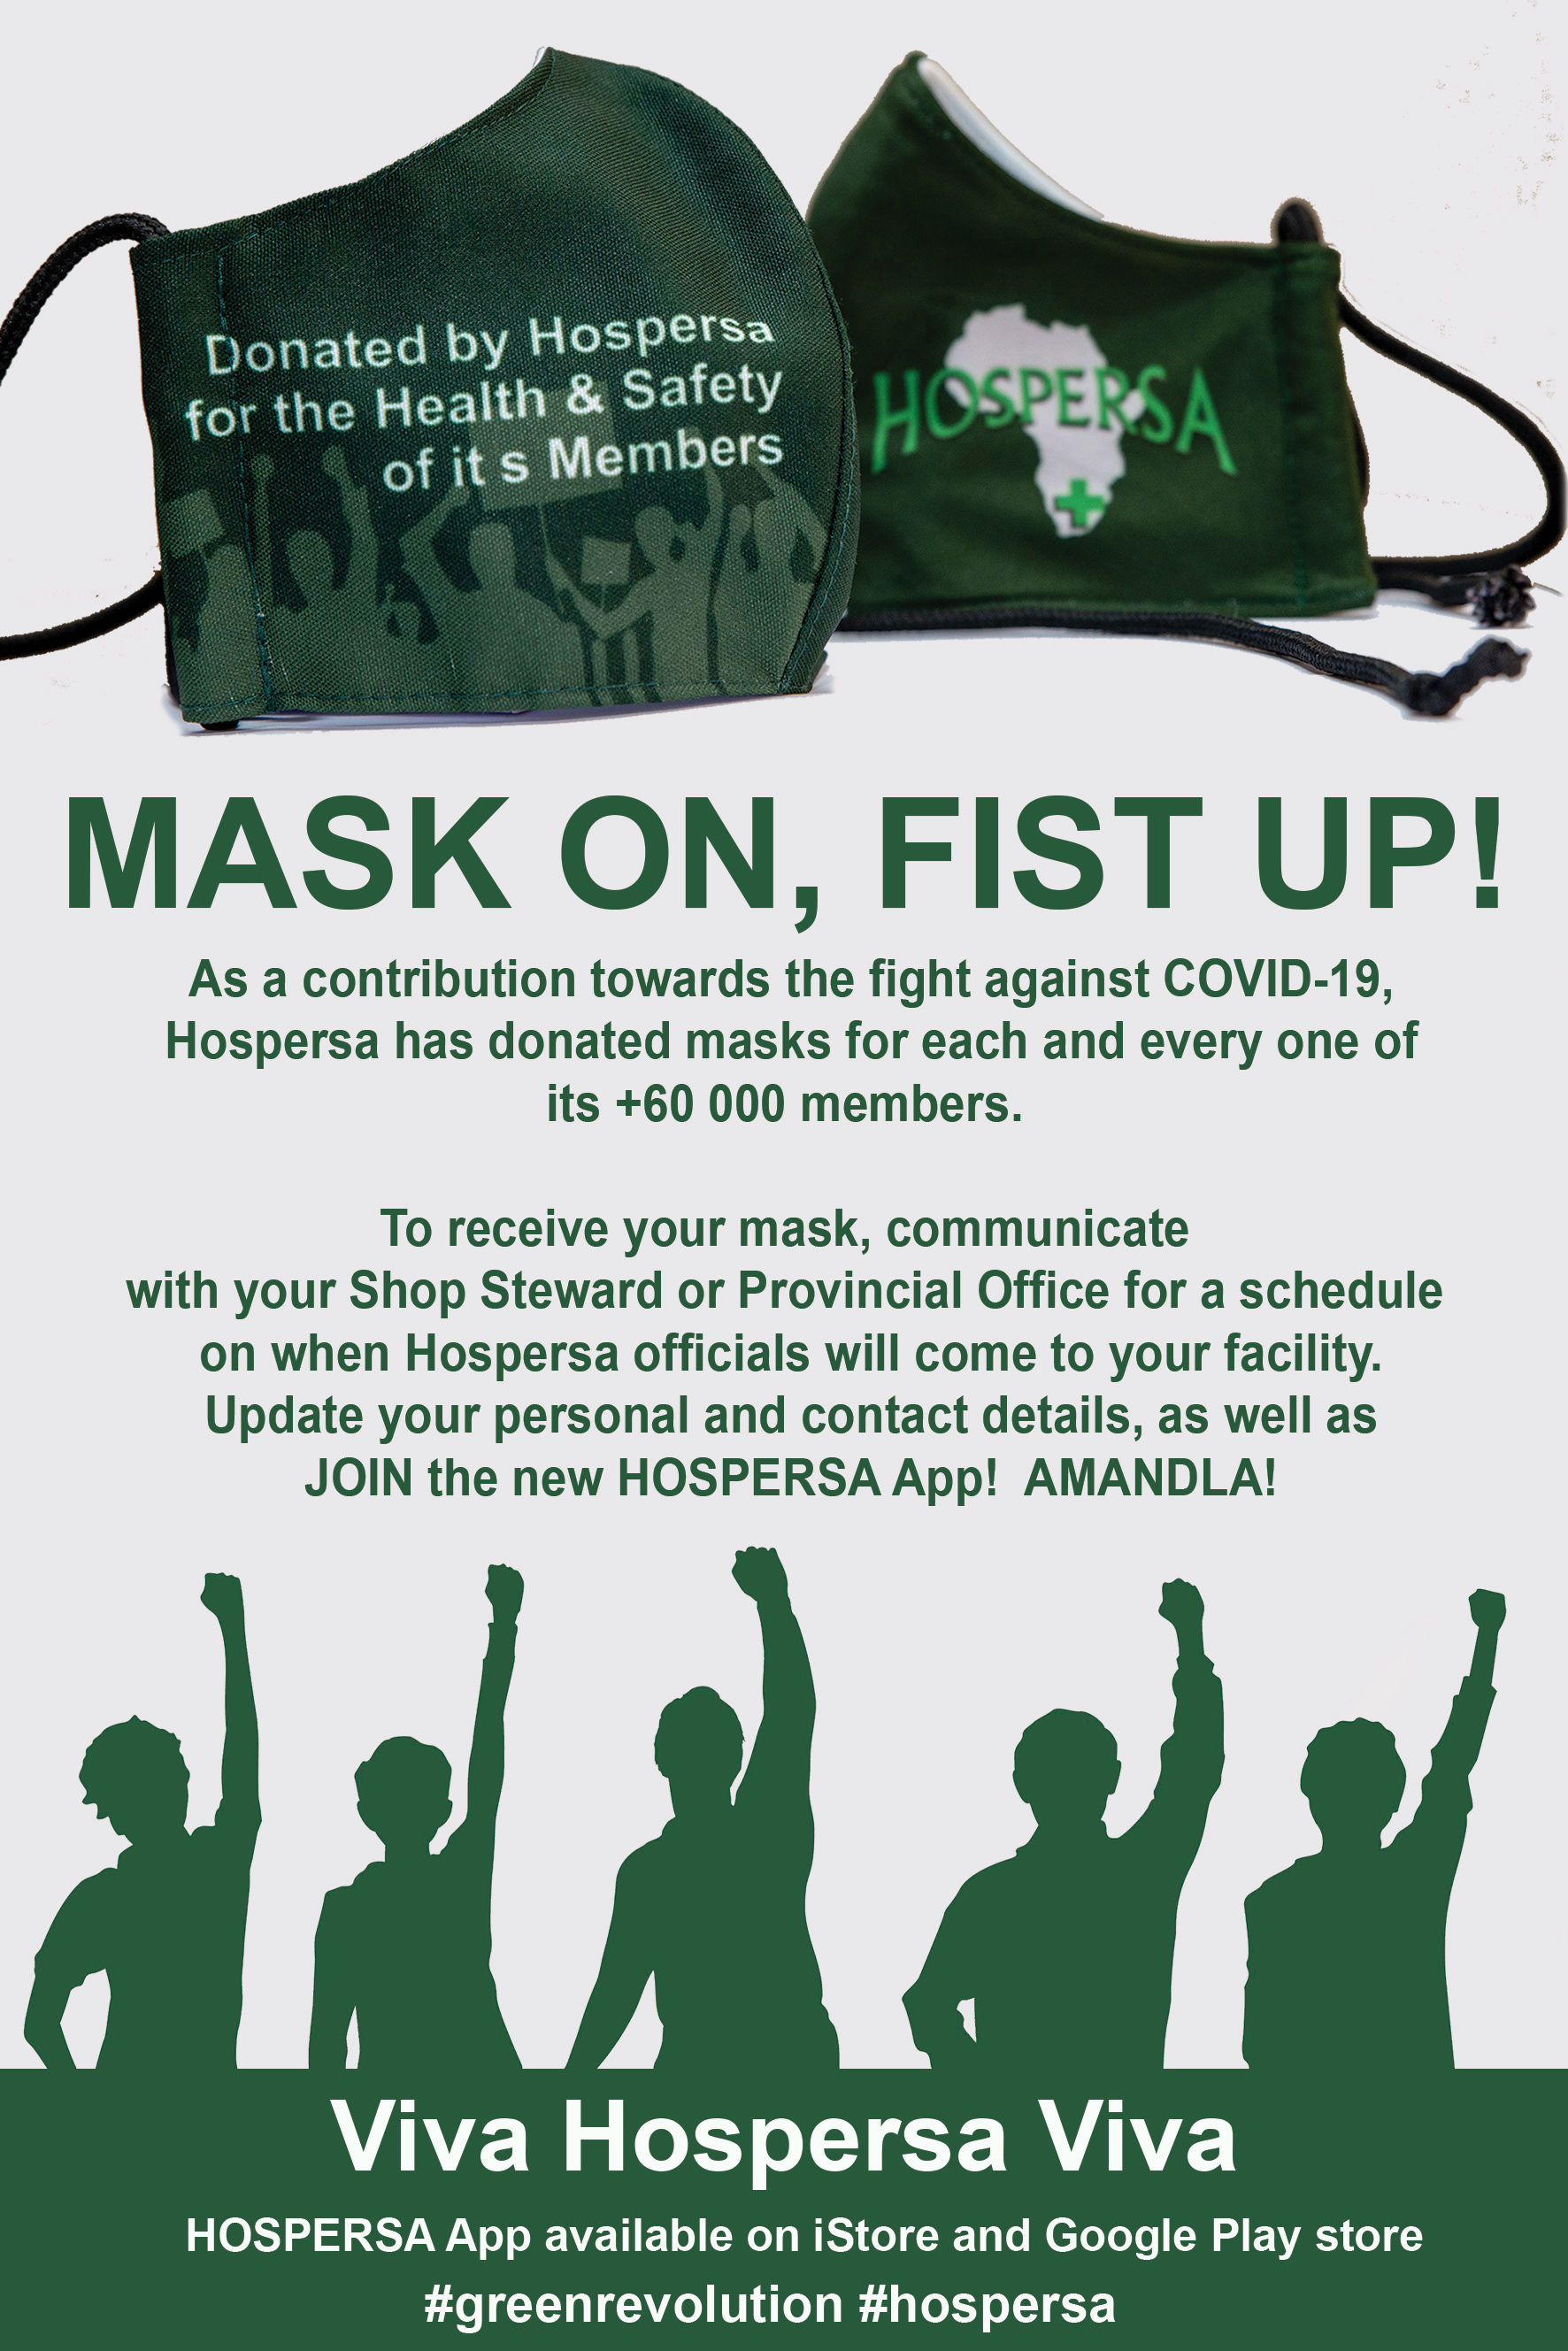 MASK ON, FIST UP!